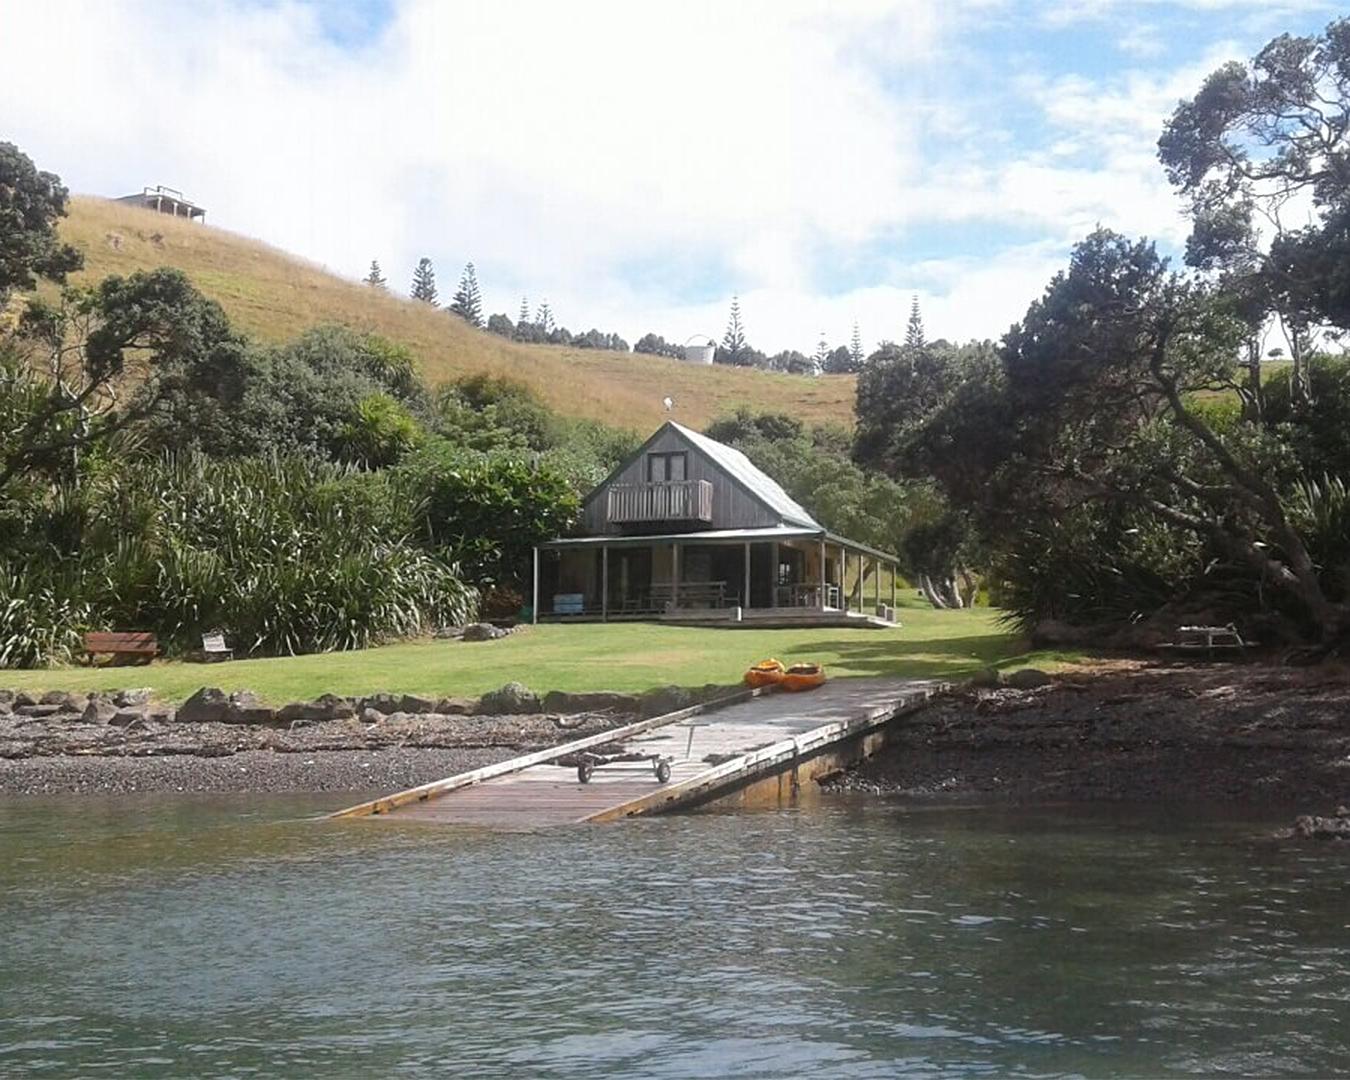 You can hire the whole site at Rocky Cove Bay. A little cabin looks out onto water.